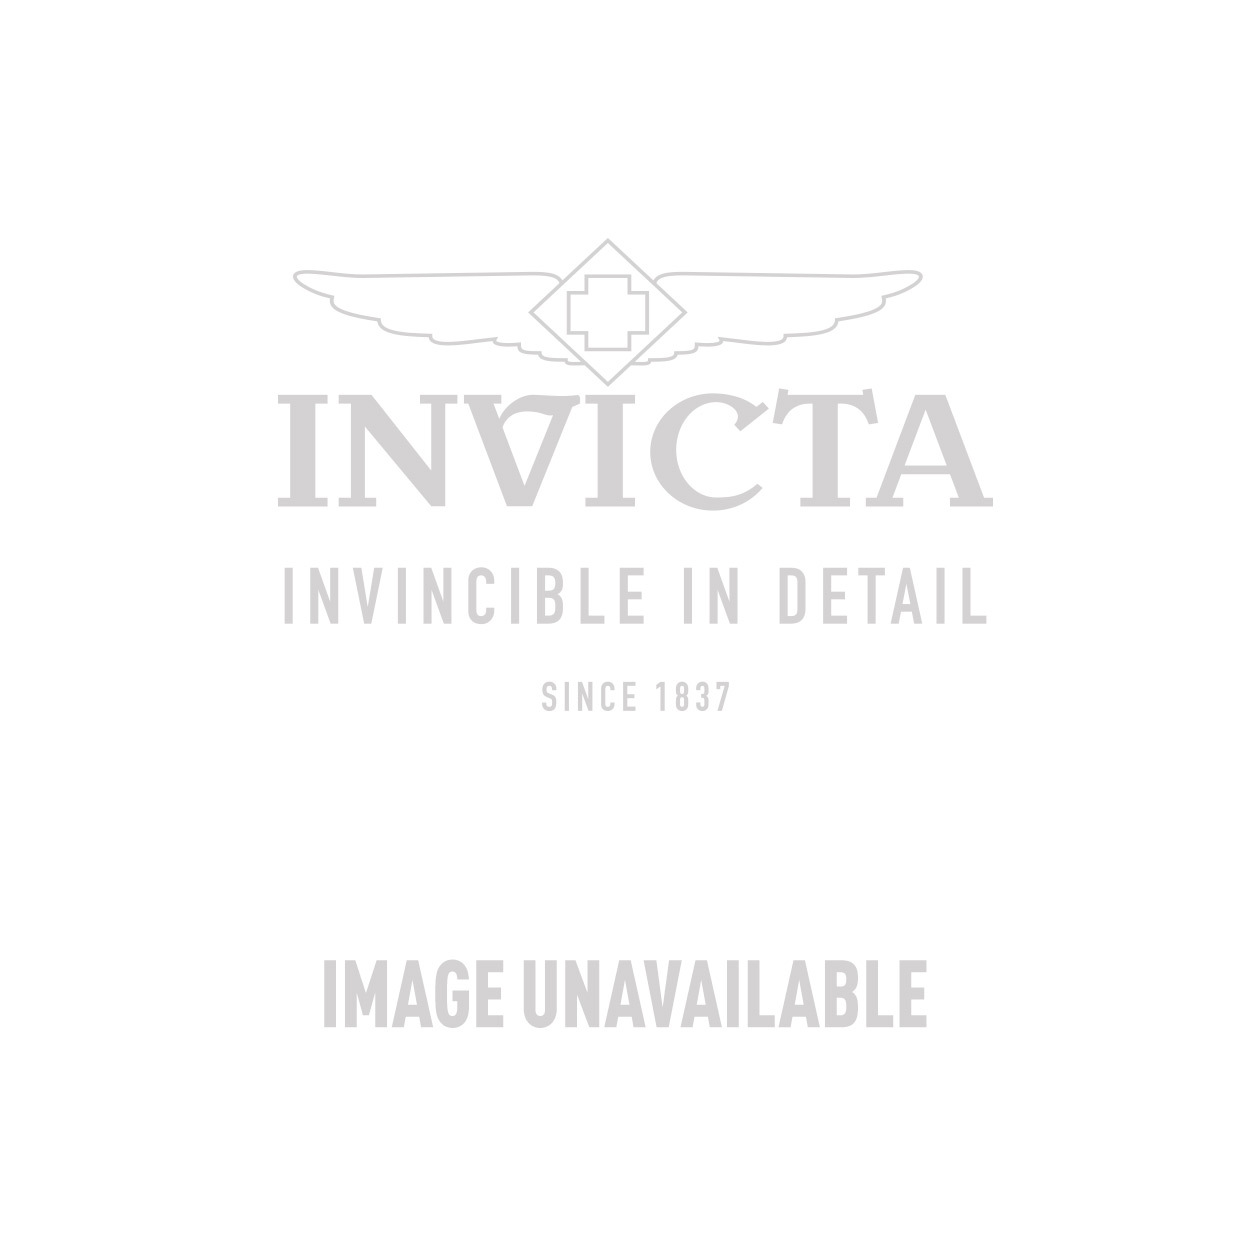 Invicta Reserve Swiss Made Automatic Watch - Black, Stainless Steel case with Black tone Leather band - Model 12500